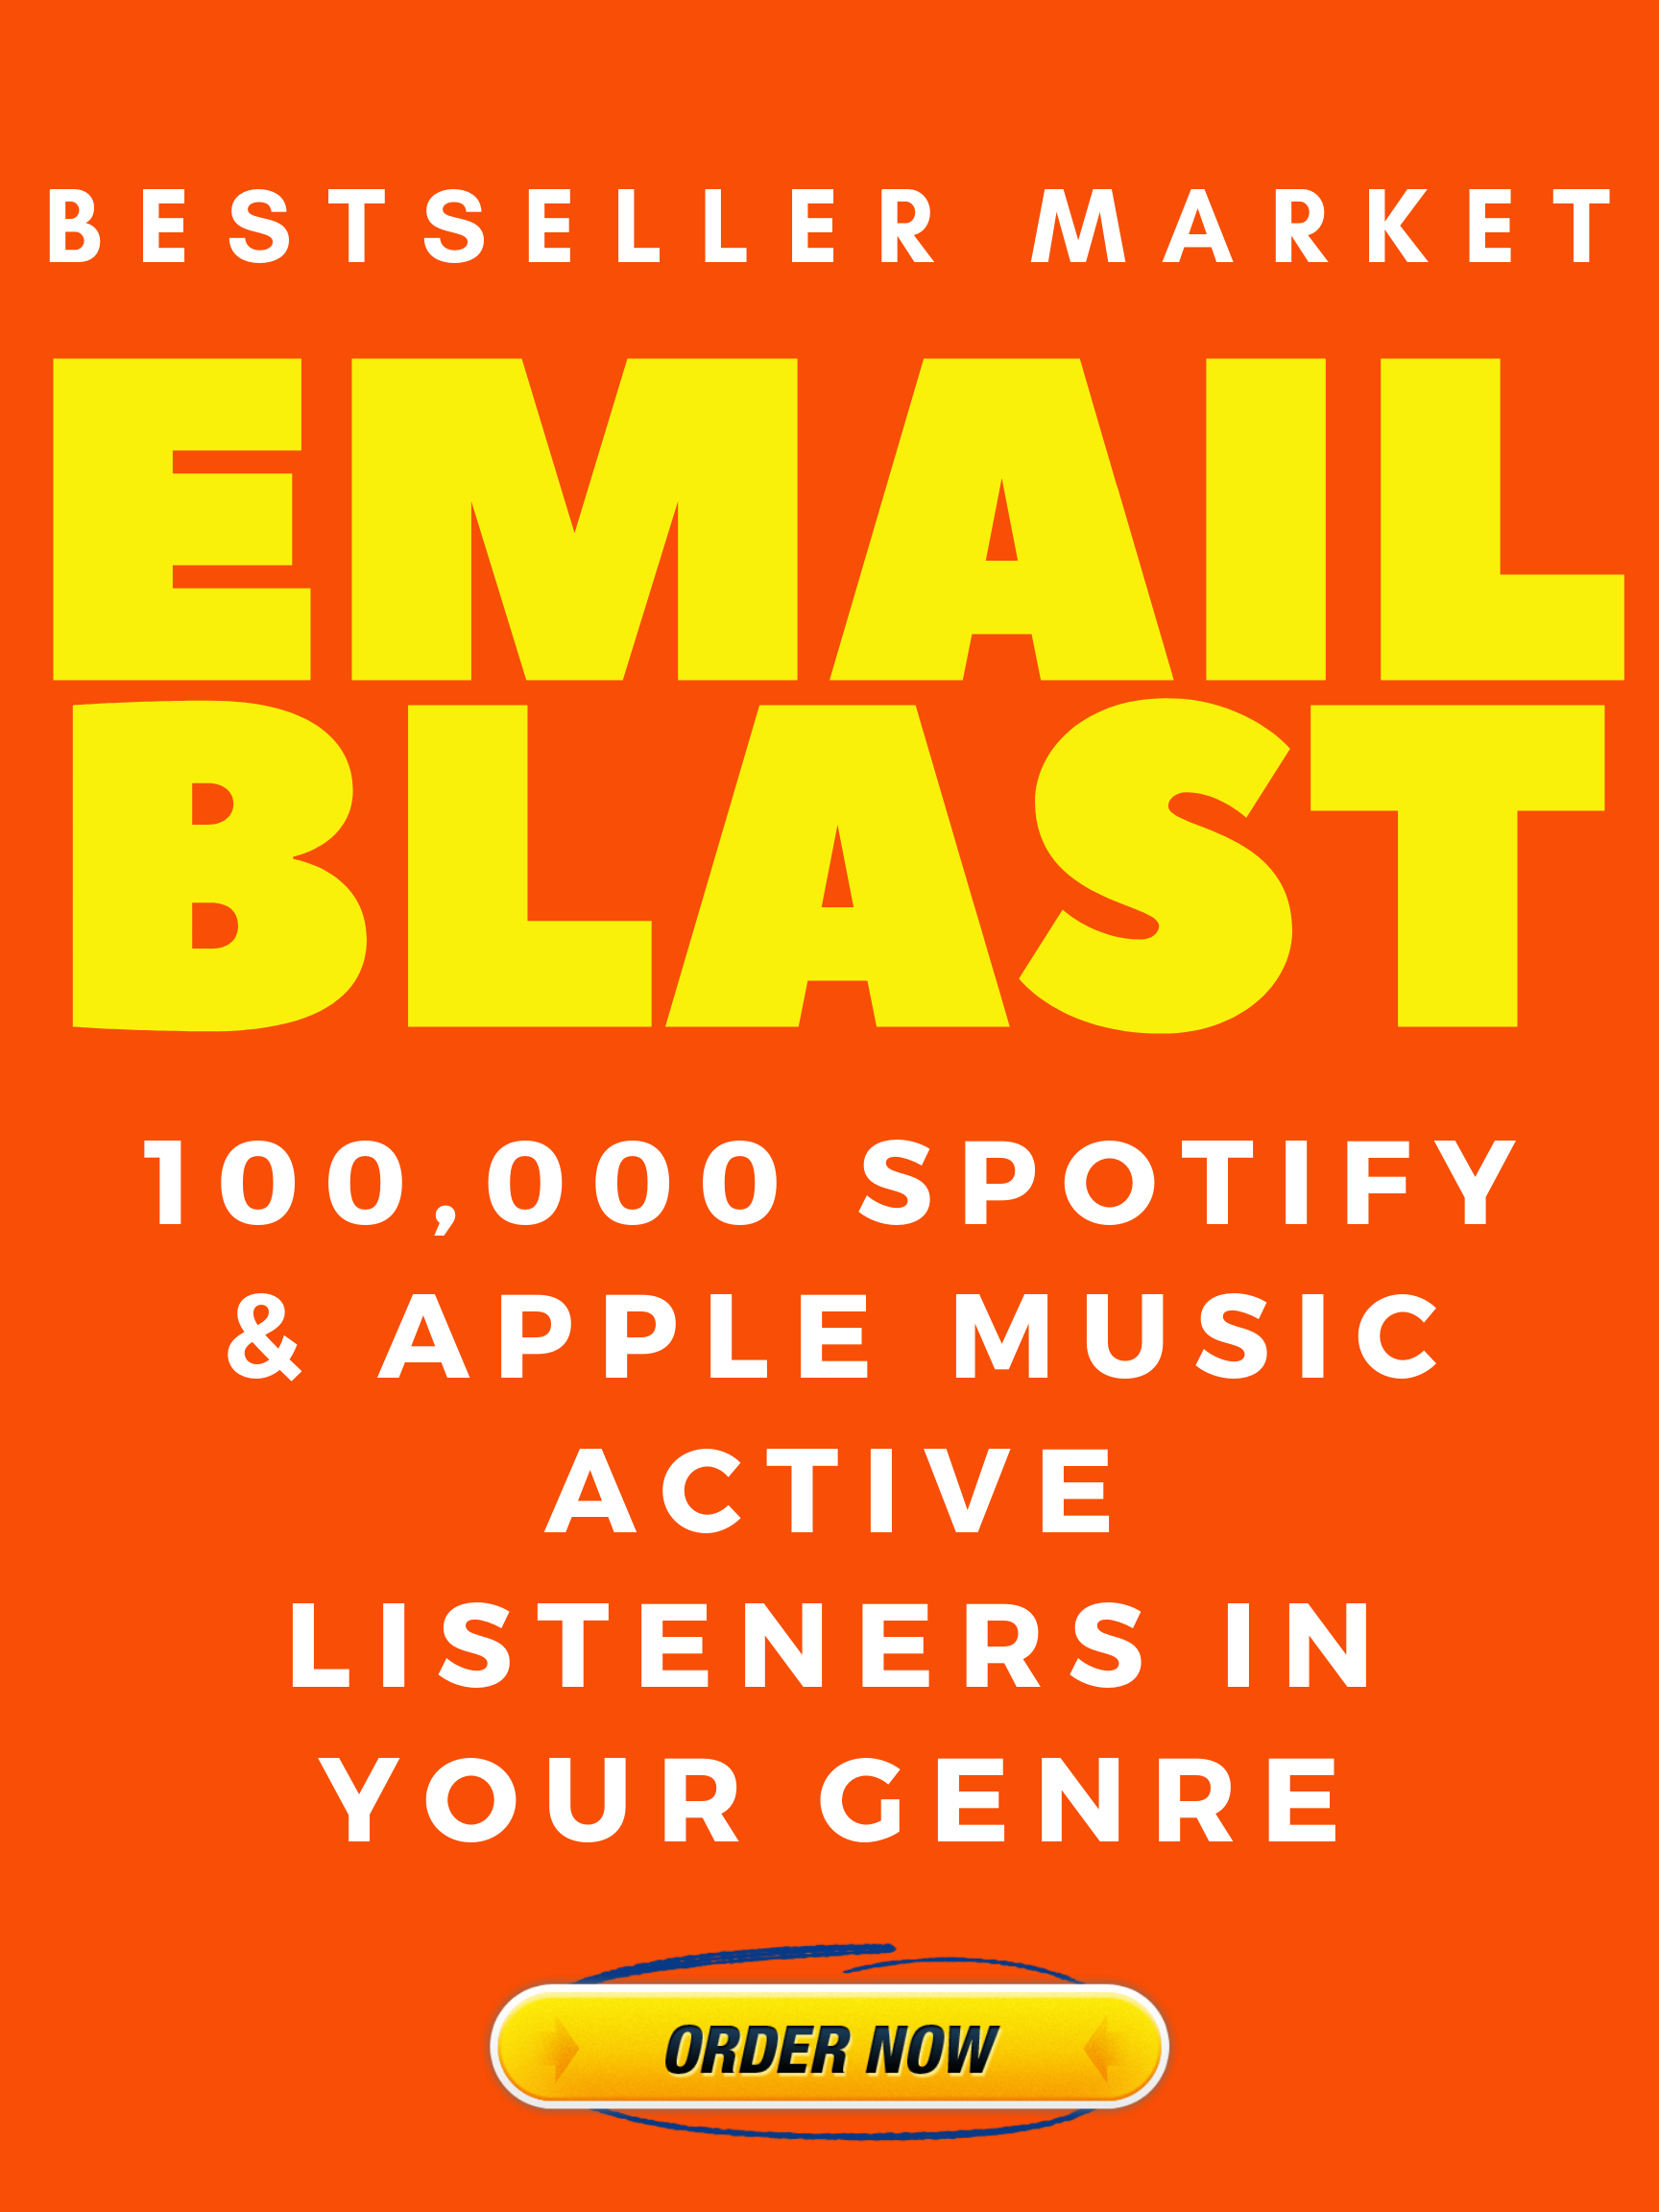 WE WILL EMAIL YOUR SONG 100,000 SPOTIFY, APPLE MUSIC AND DEEZER